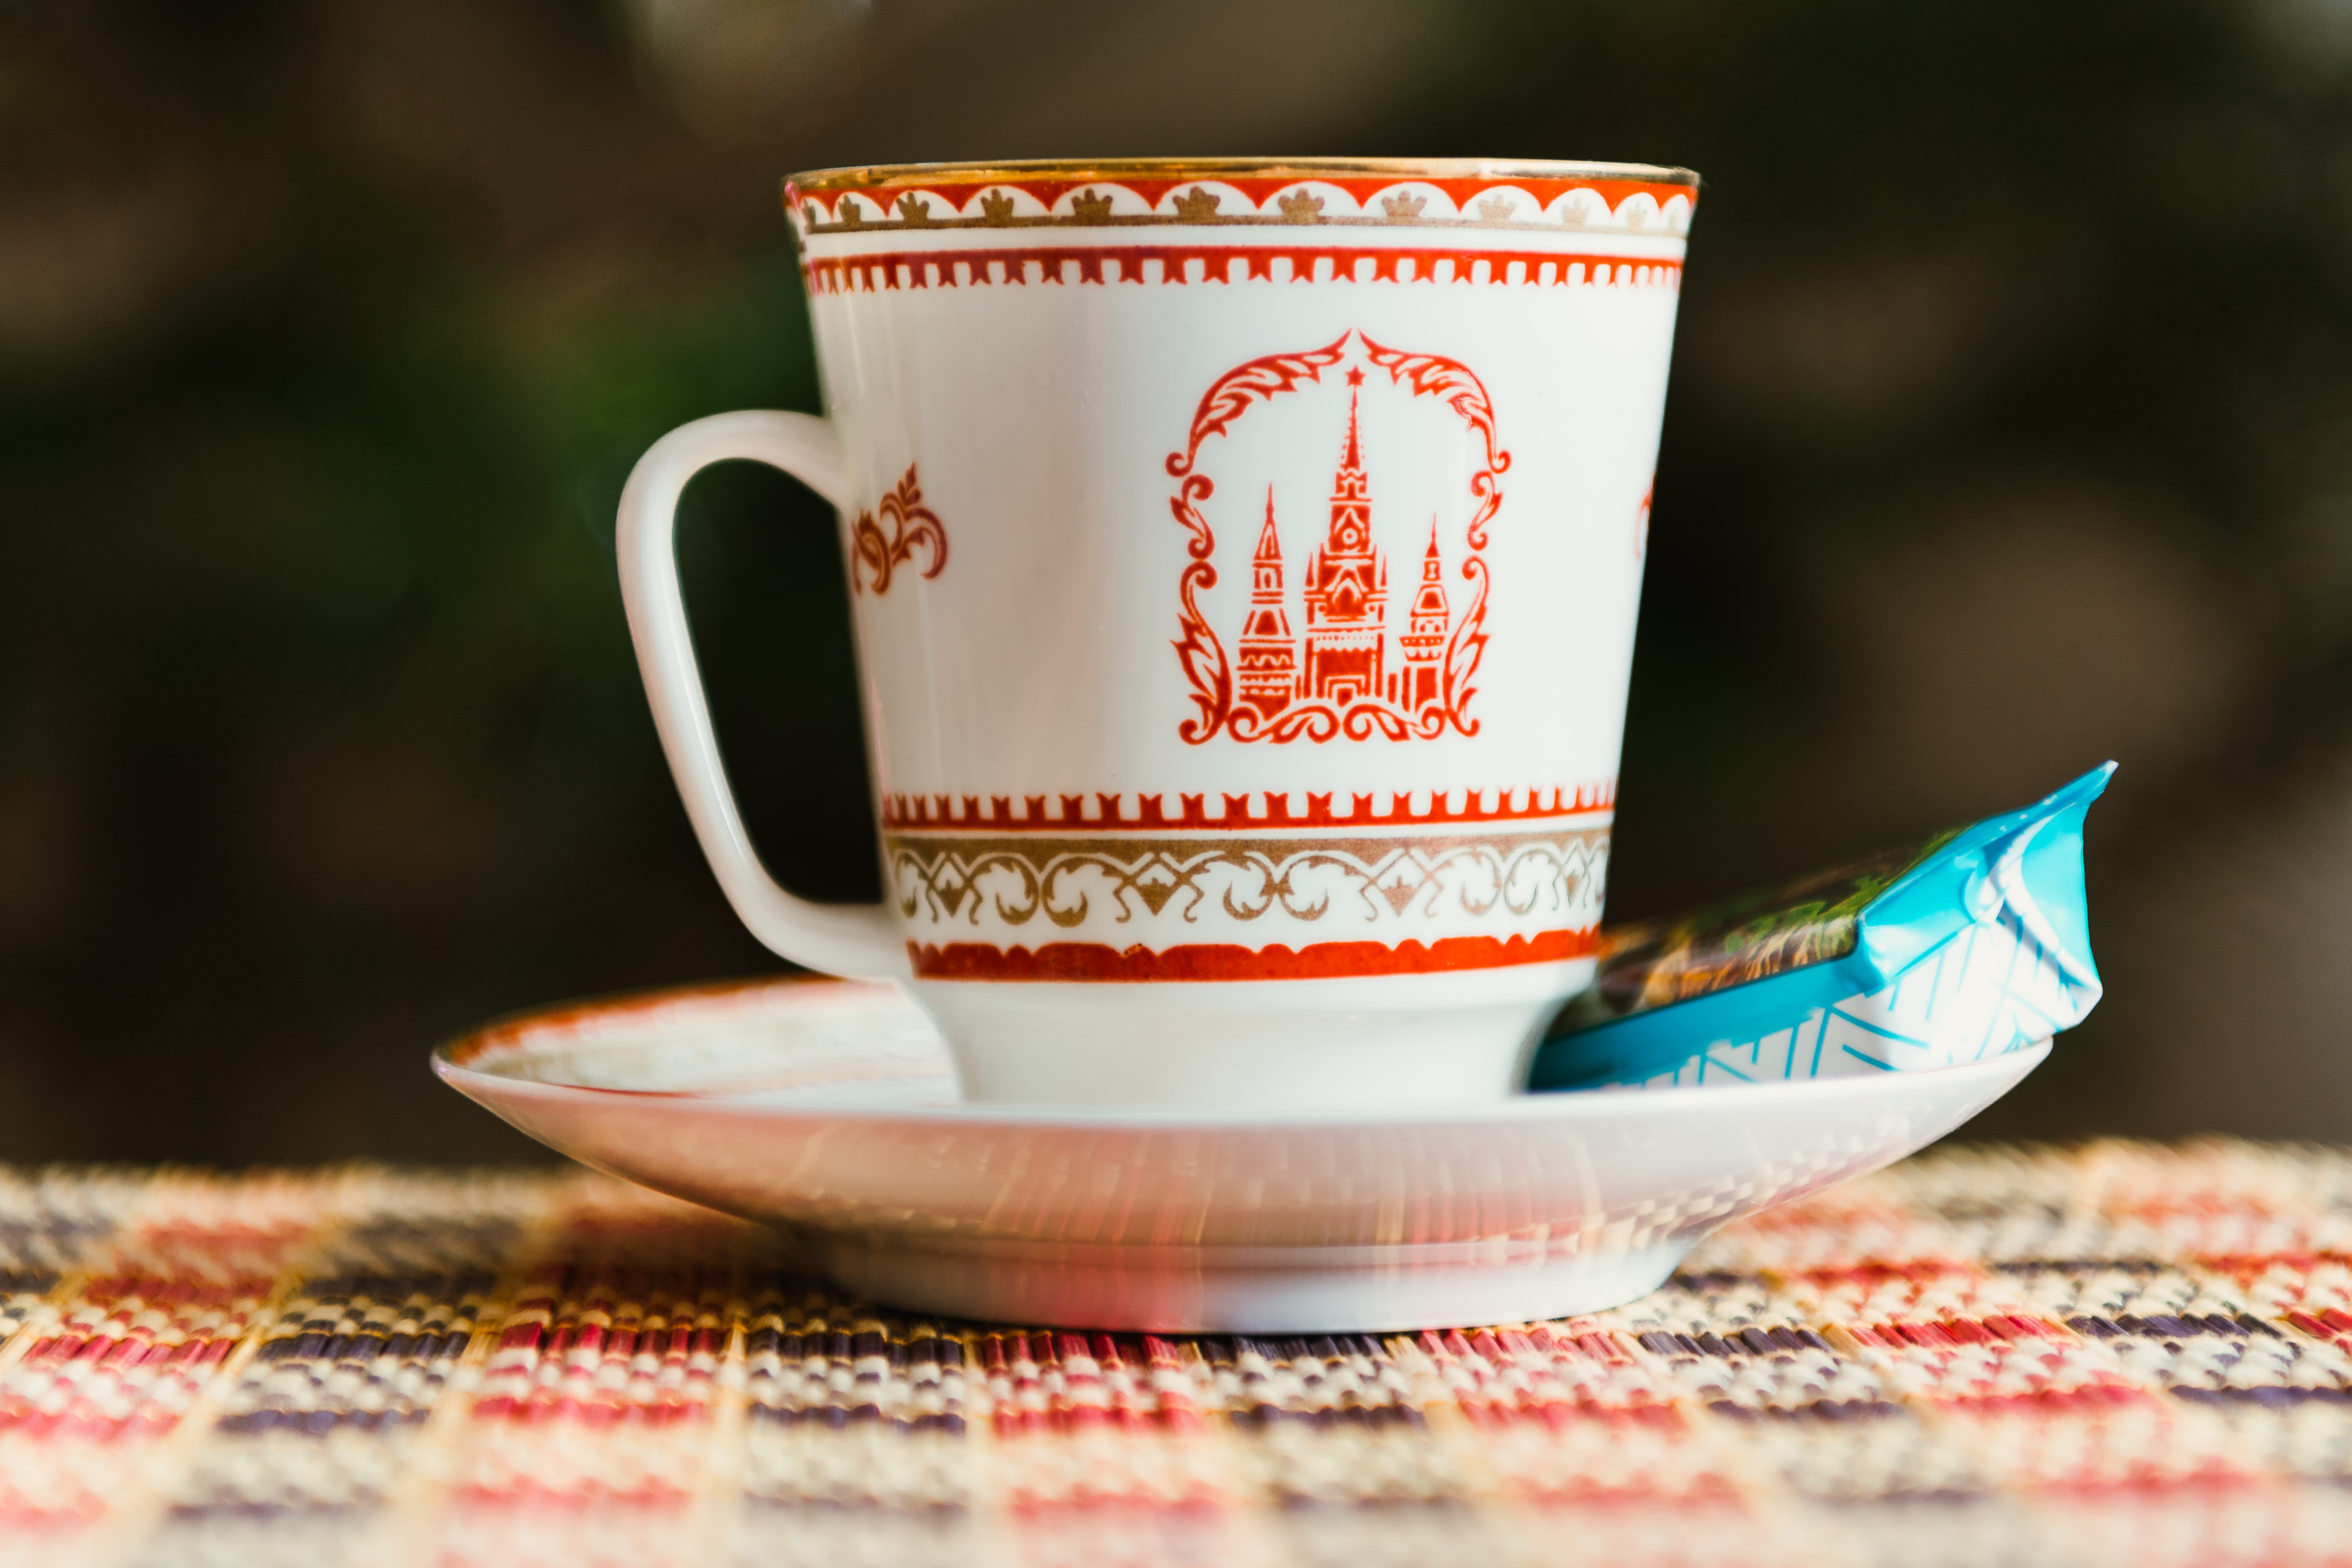 A ceramic cup with a castle on it sitting on a saucer with a biscuit in a wrapper